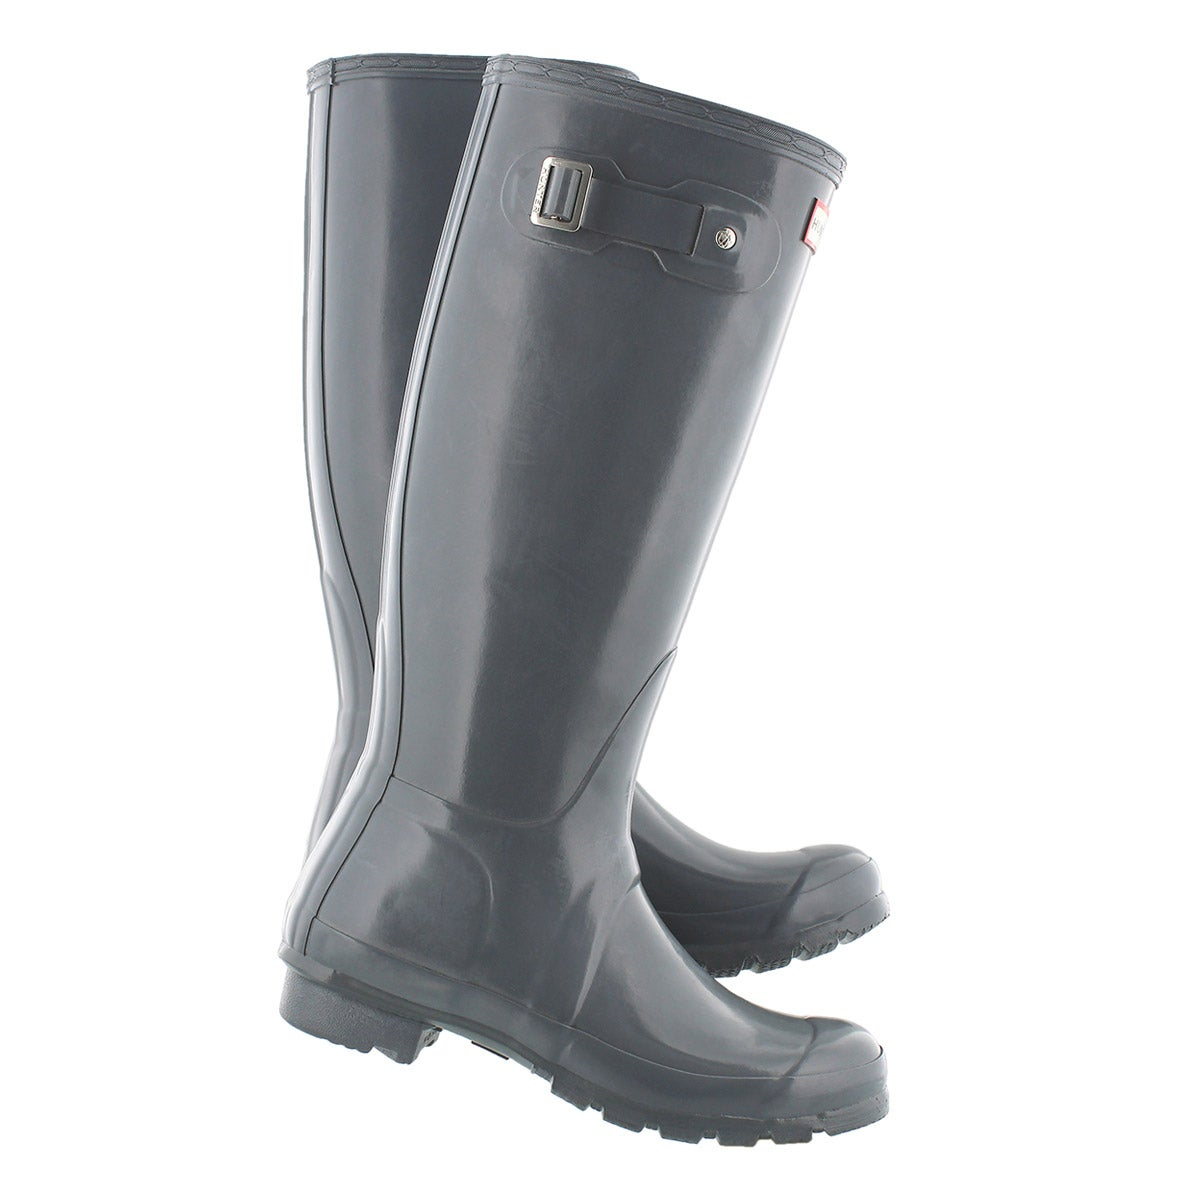 Lds Original Tall Gloss grey rain boot